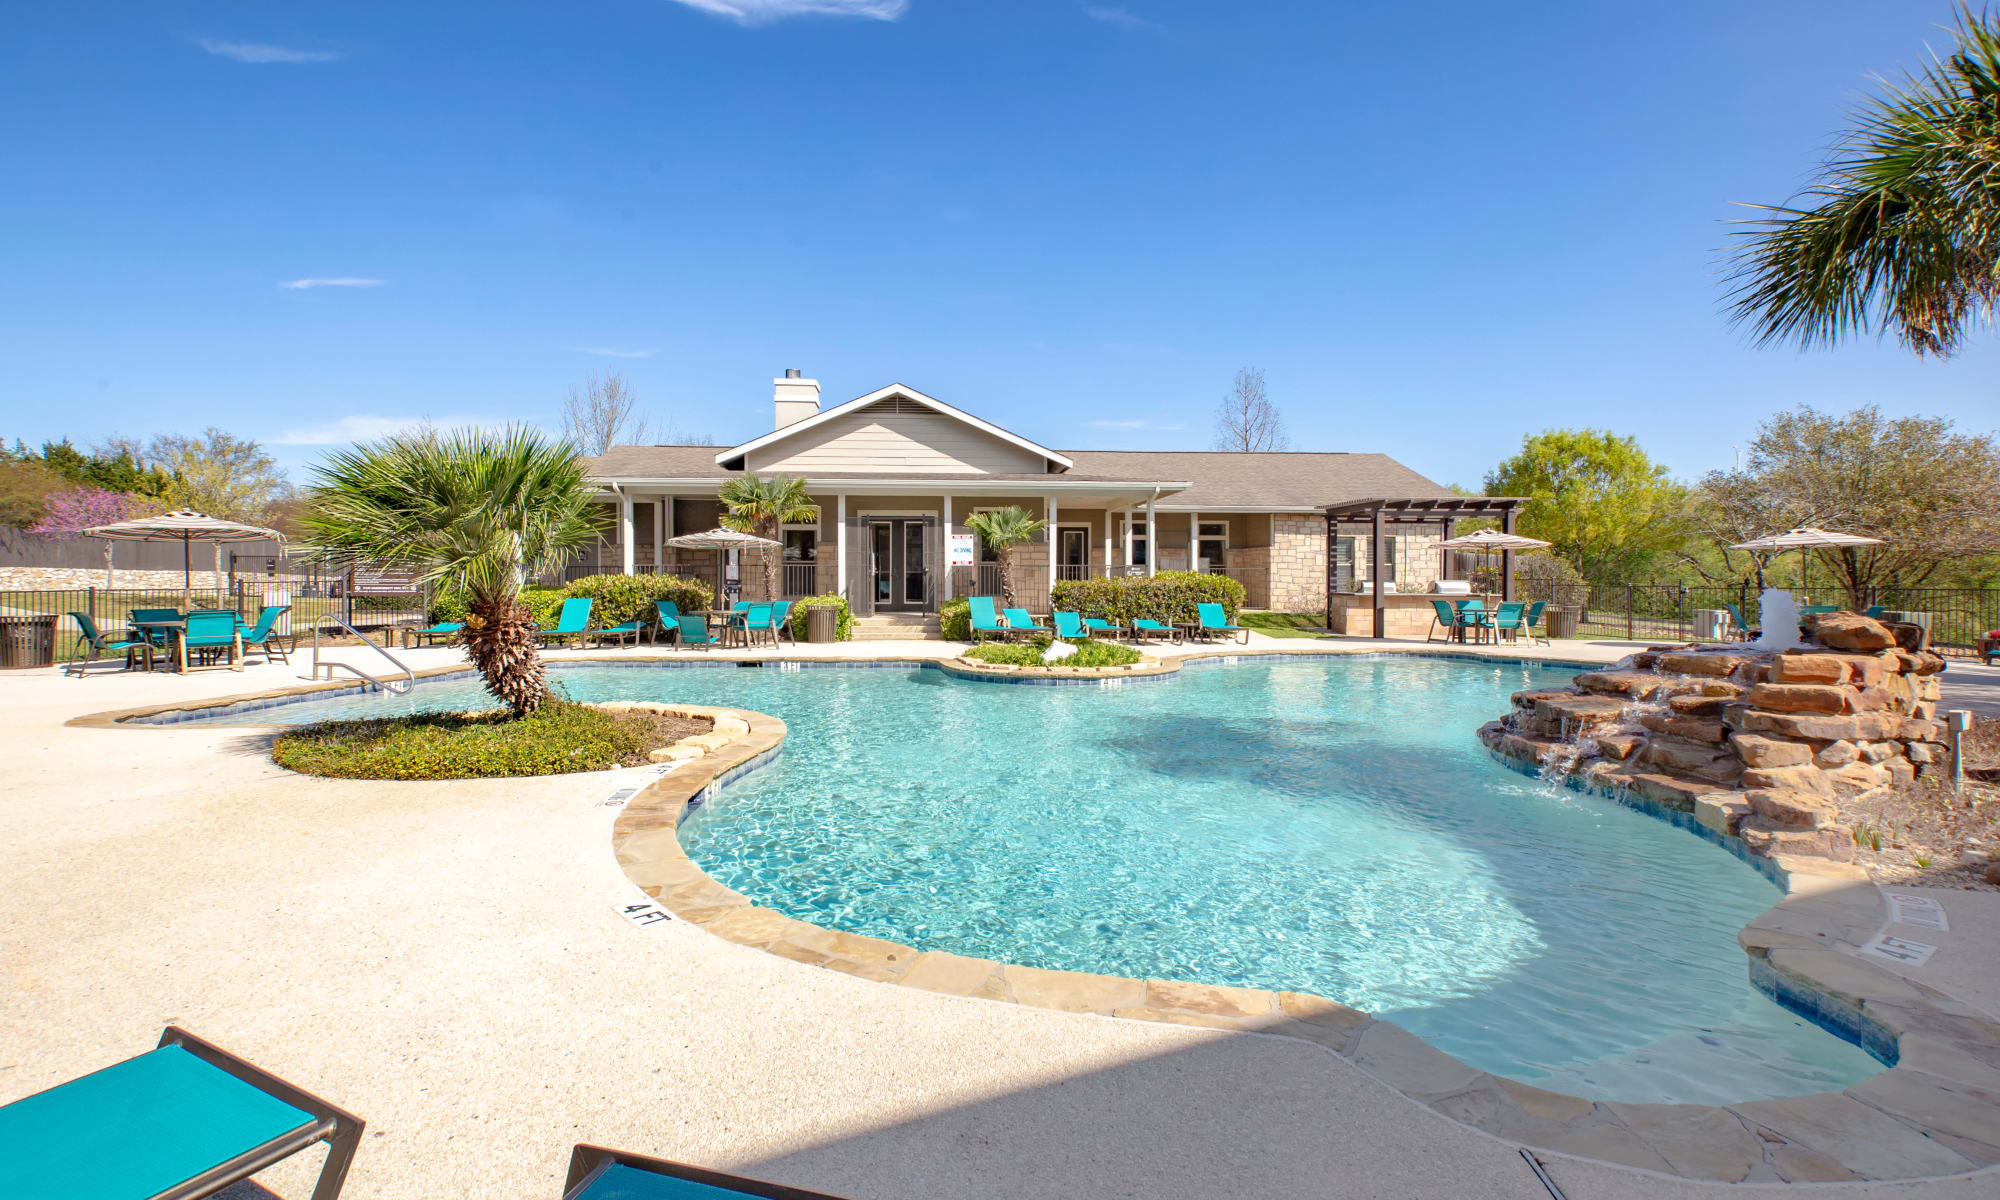 Apartments at Arya Grove in Universal City, Texas